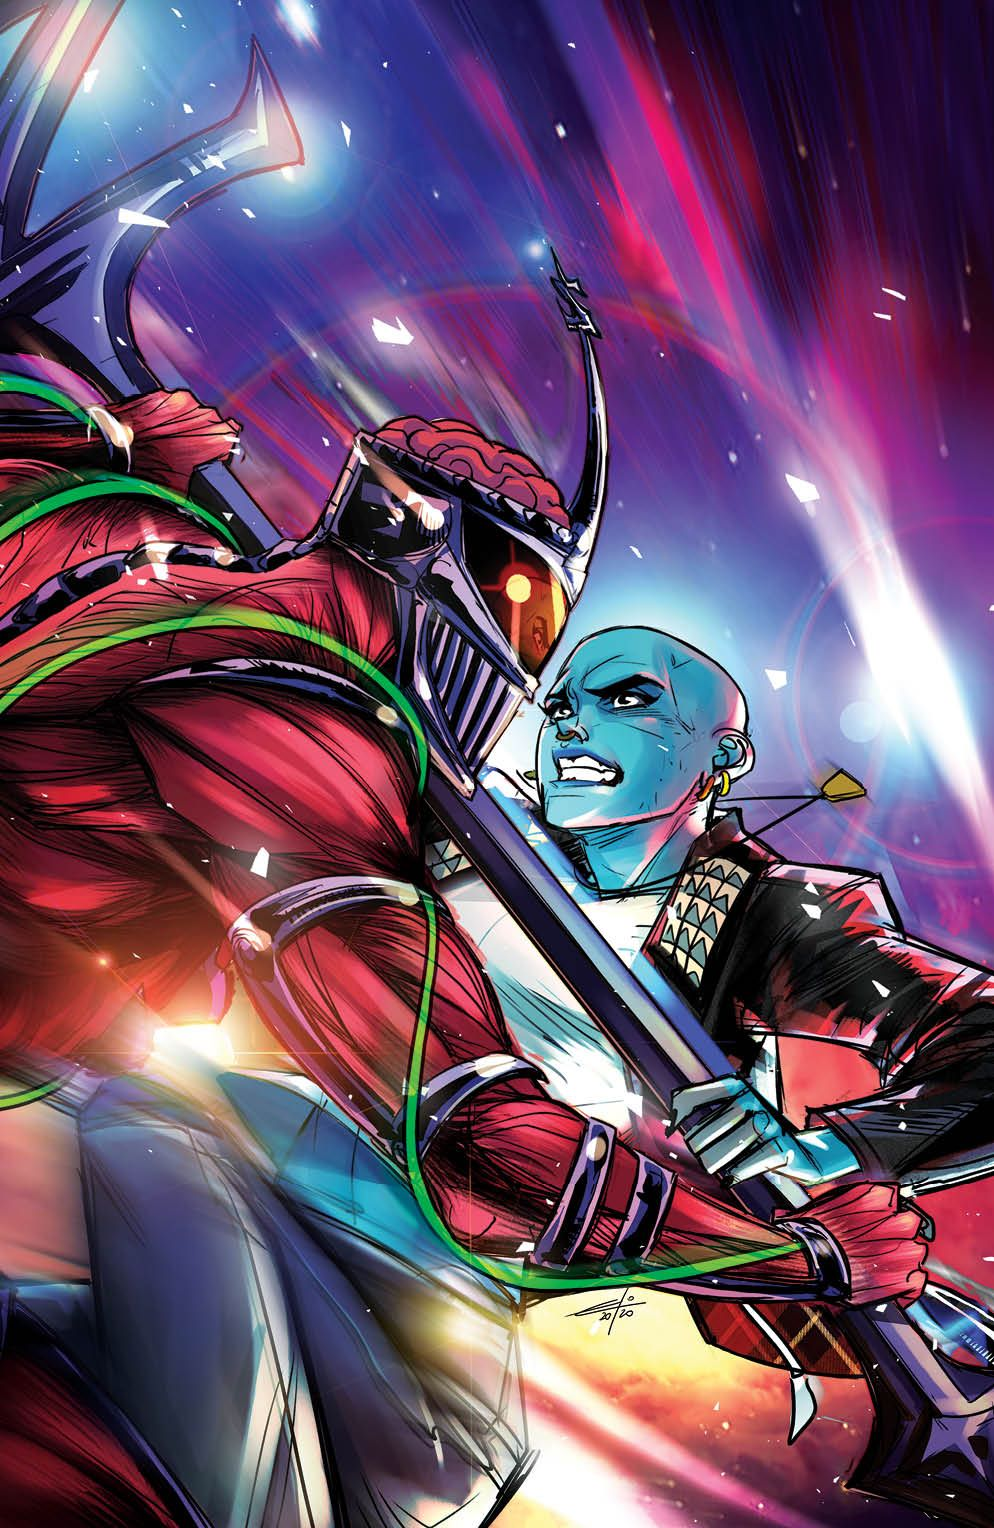 Mighty_Morphin_008_Cover_E_Variant-1 ComicList Previews: MIGHTY MORPHIN #8